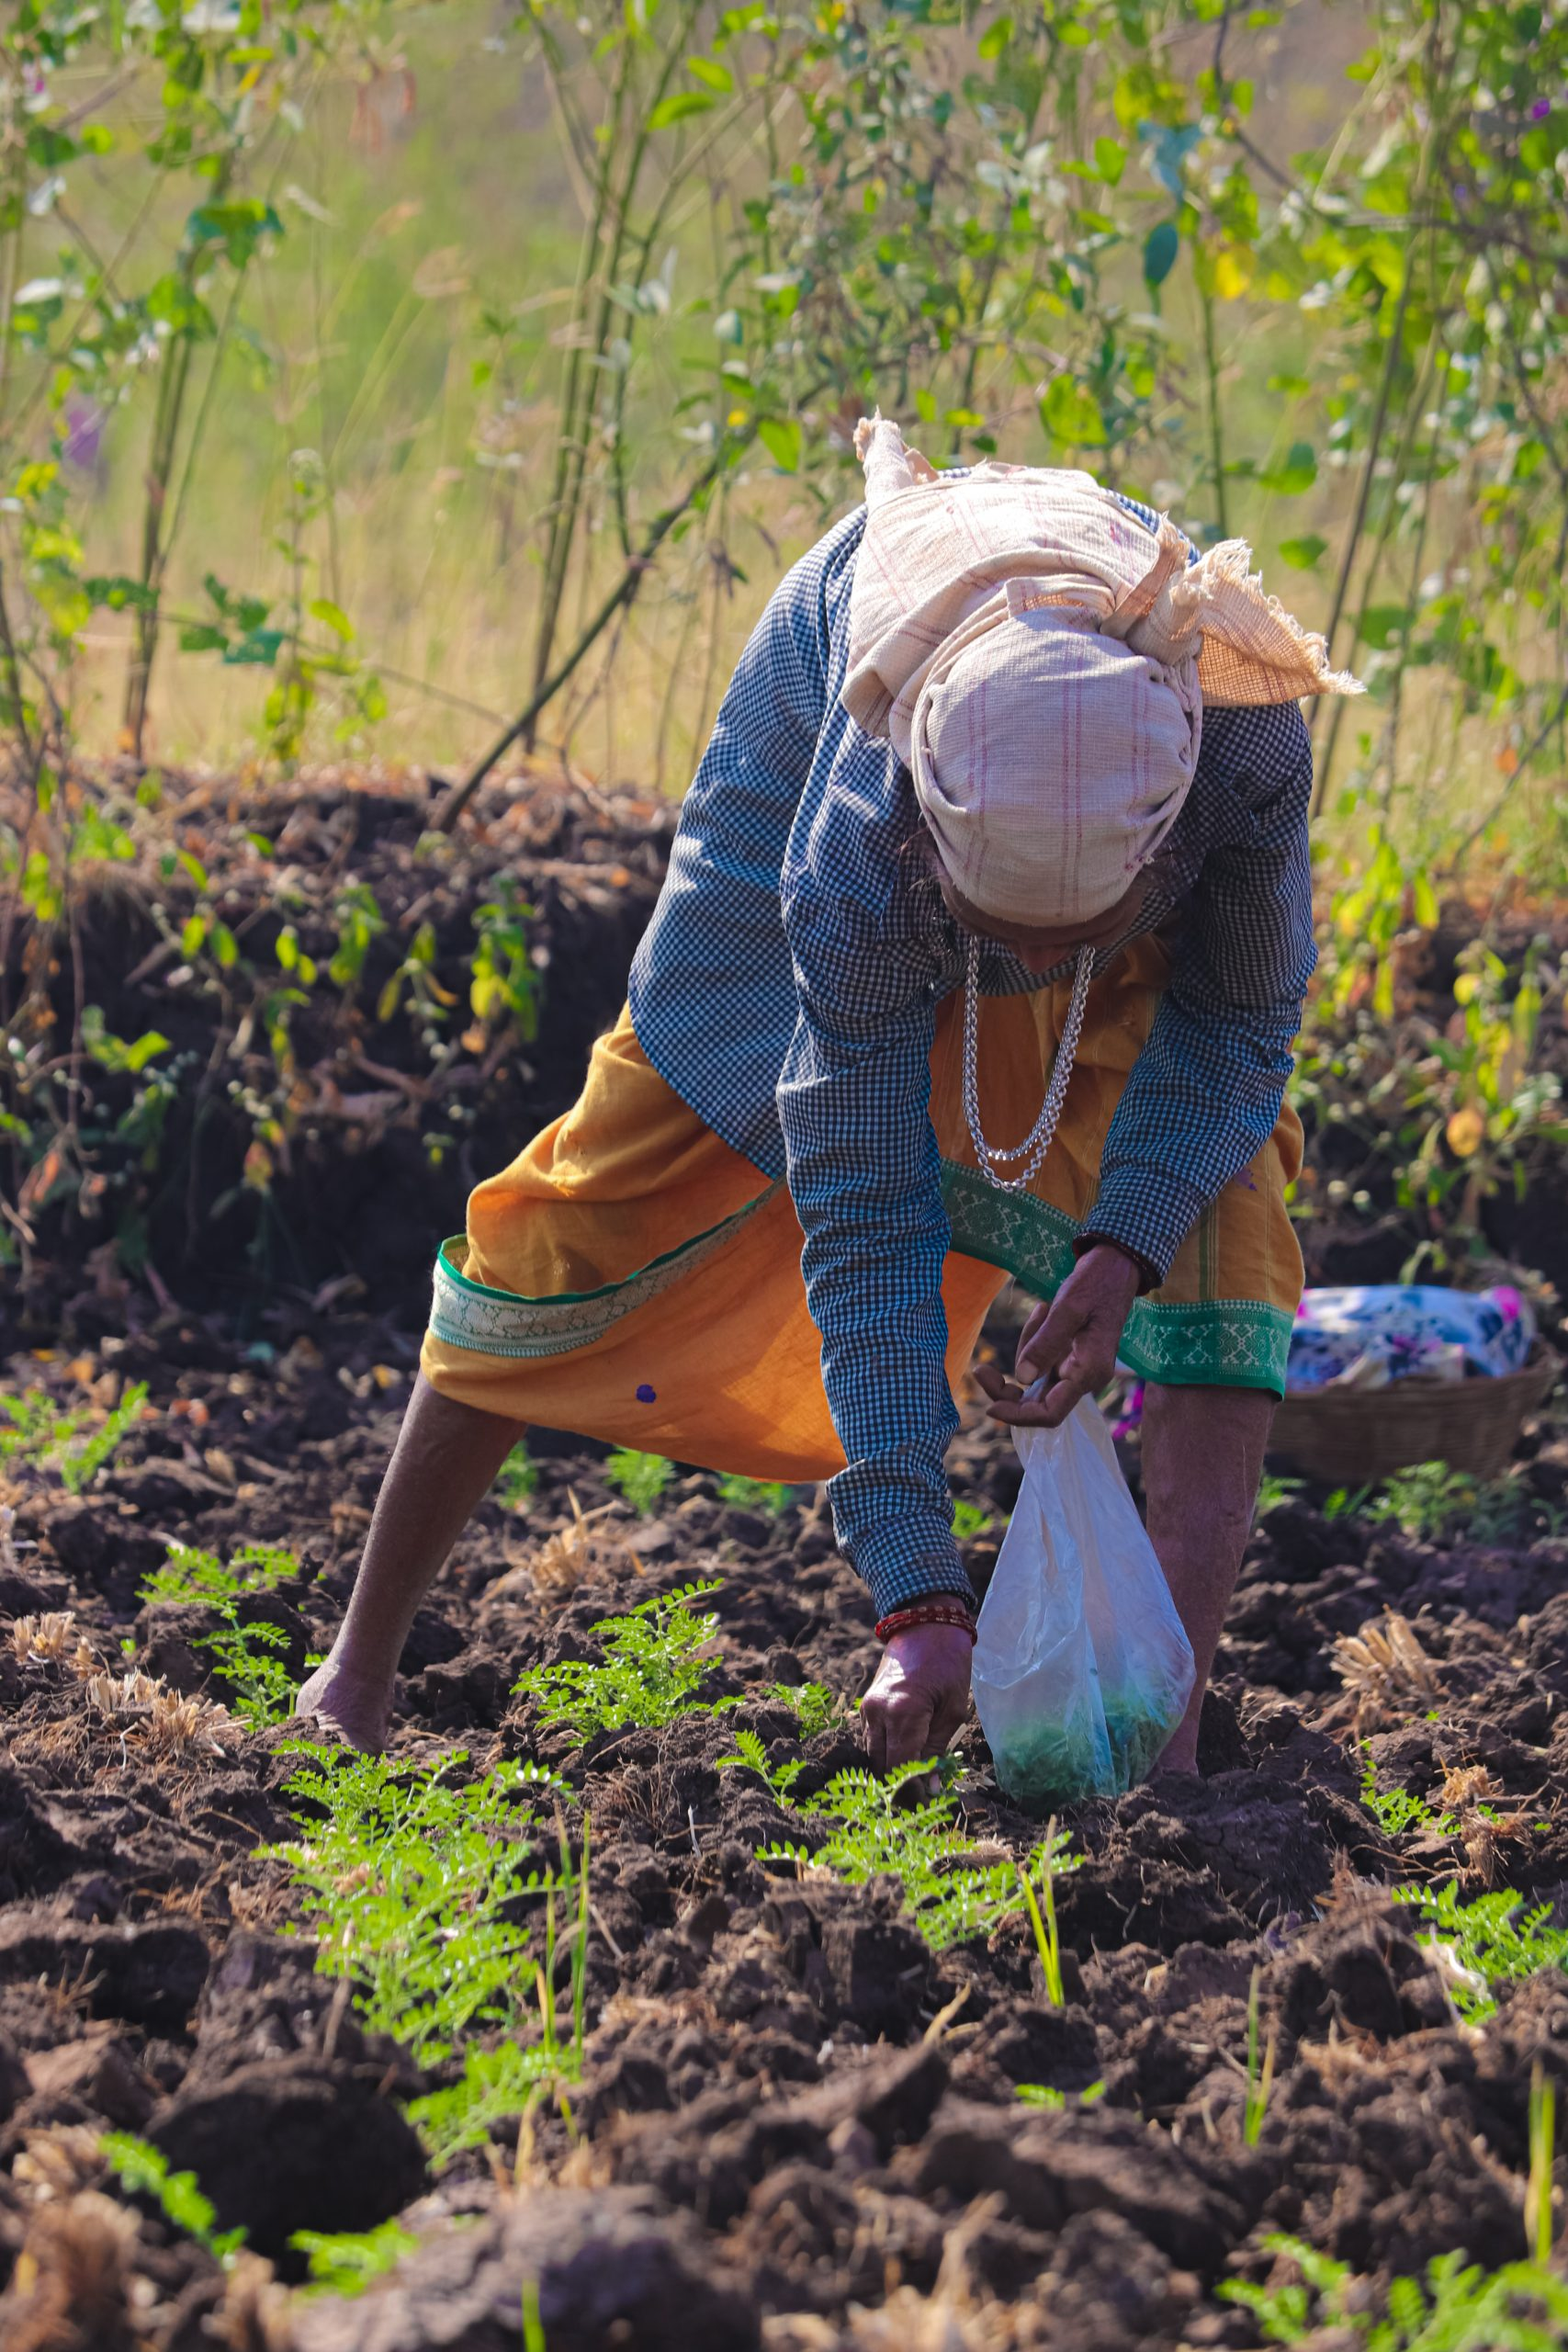 A lady farmer sowing the seeds